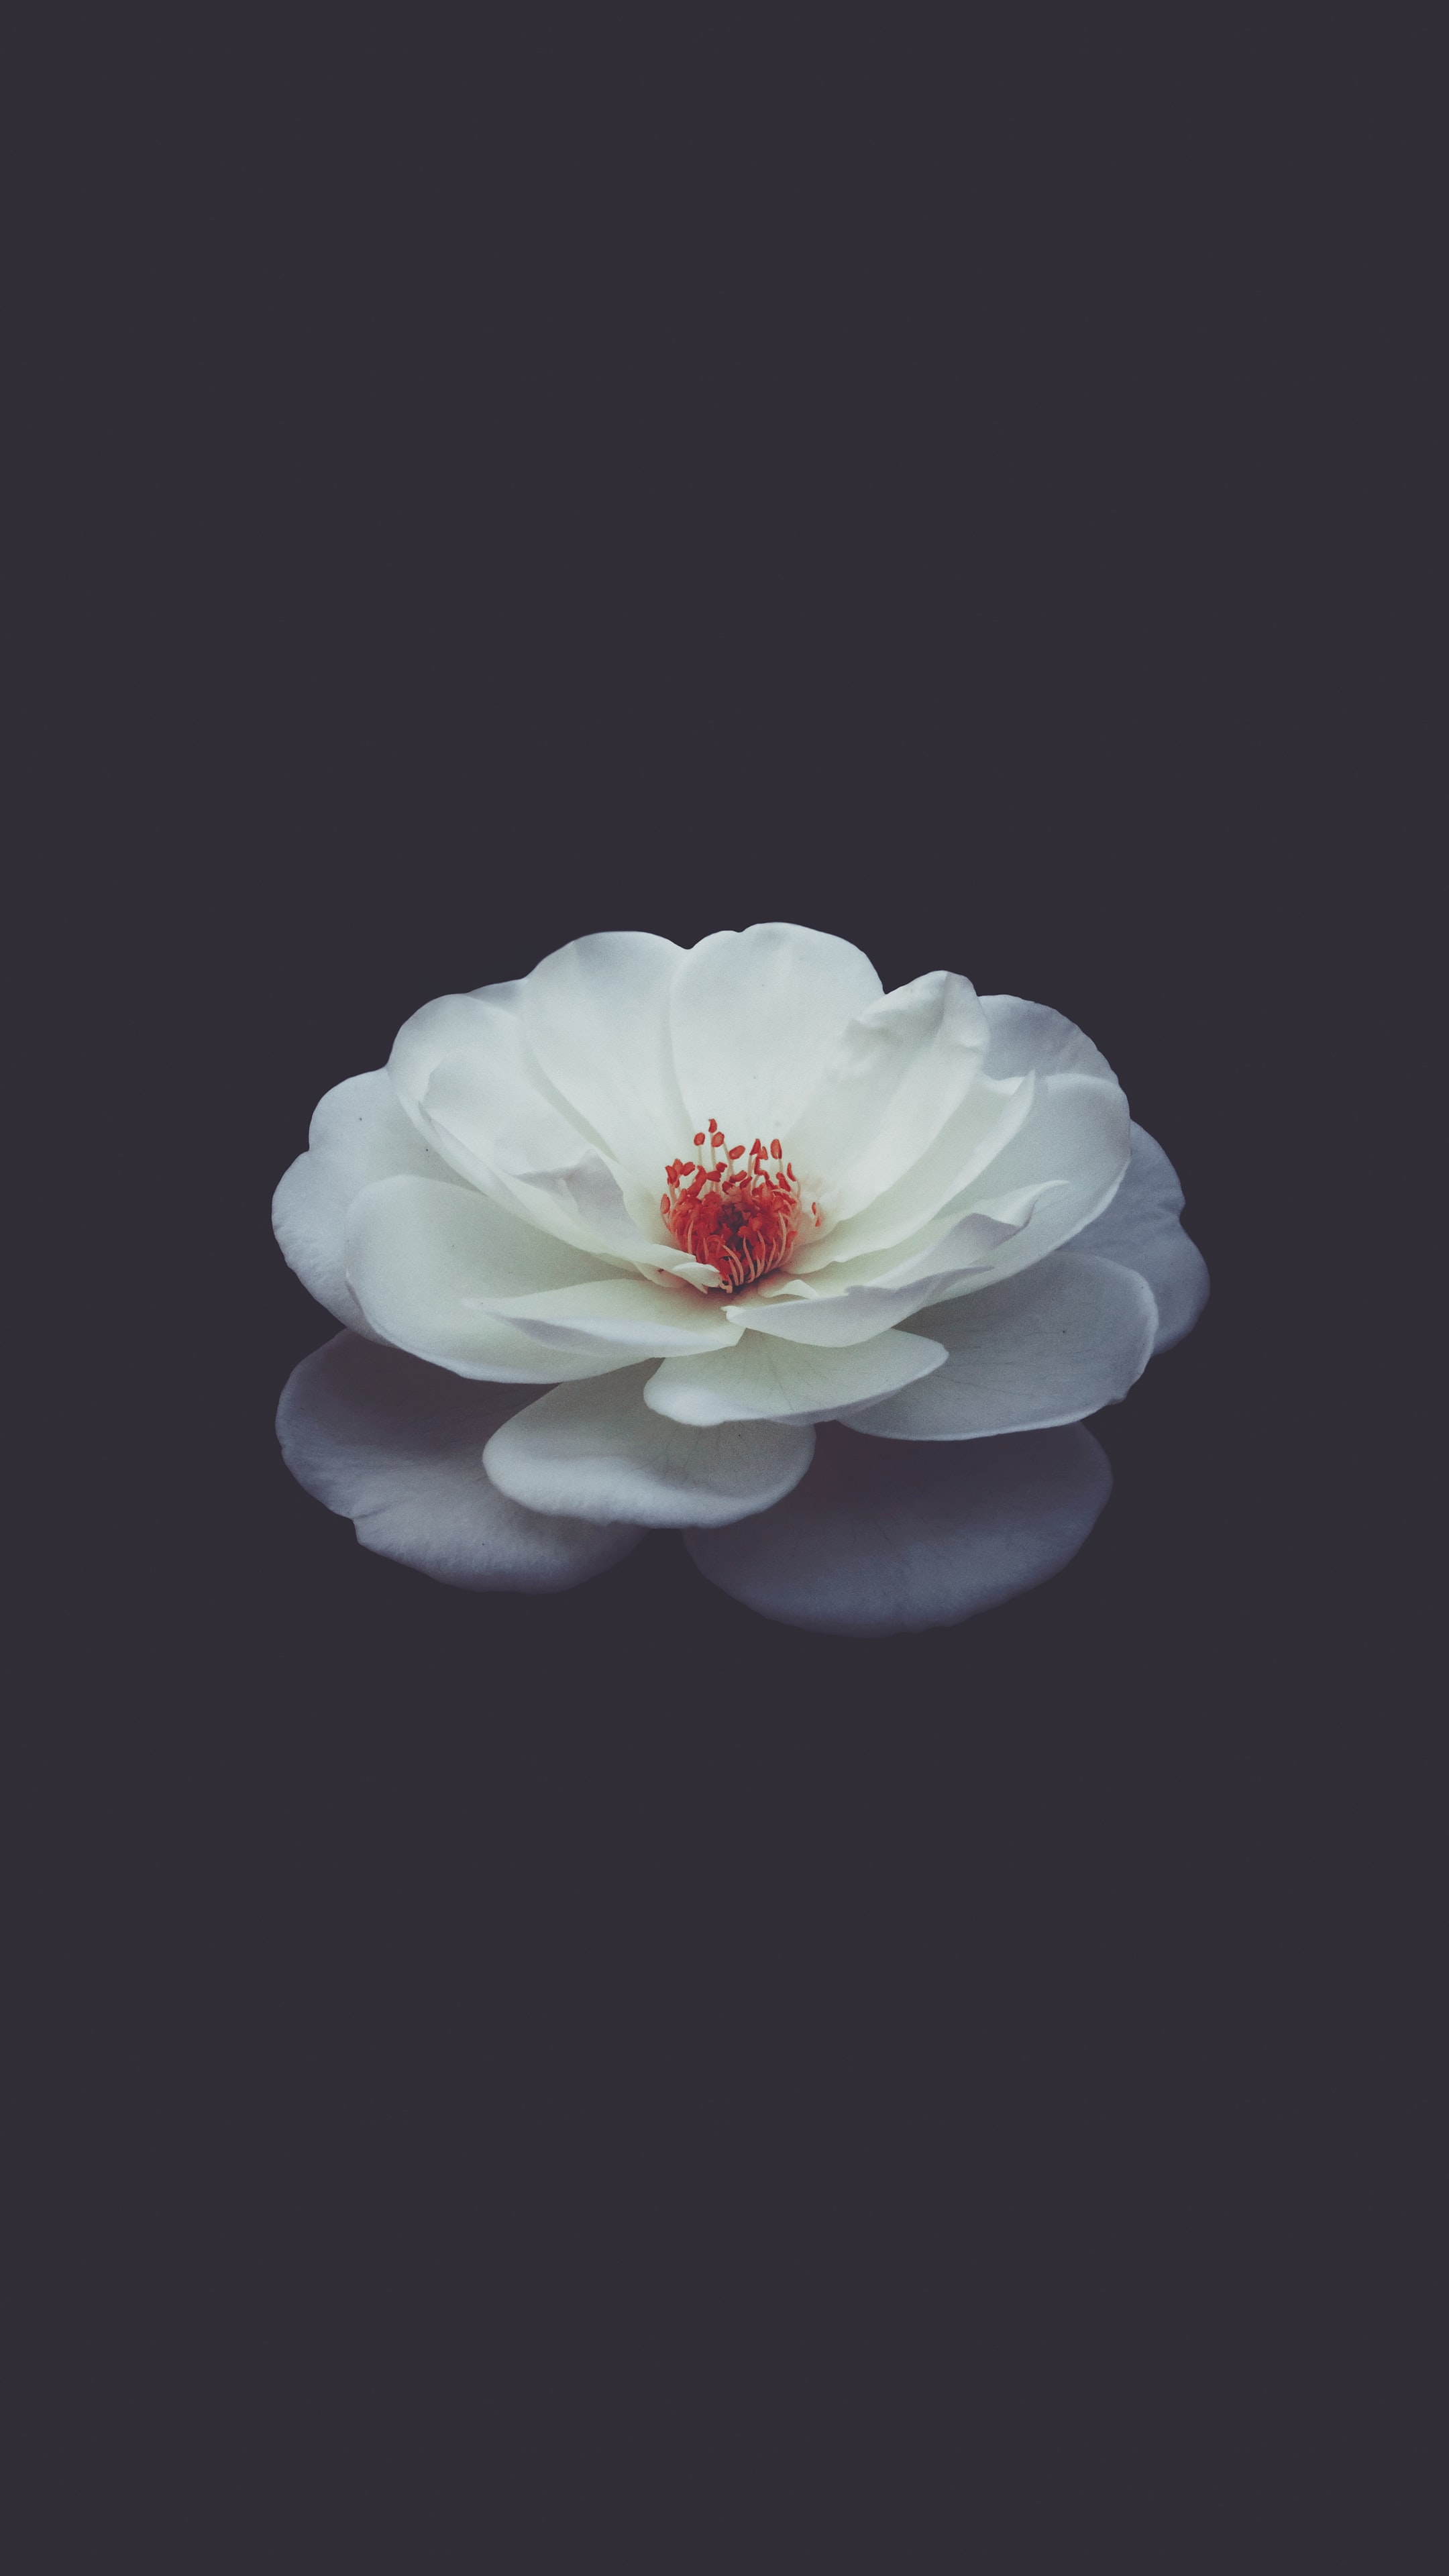 shallow focus photography of white petaled flower in water